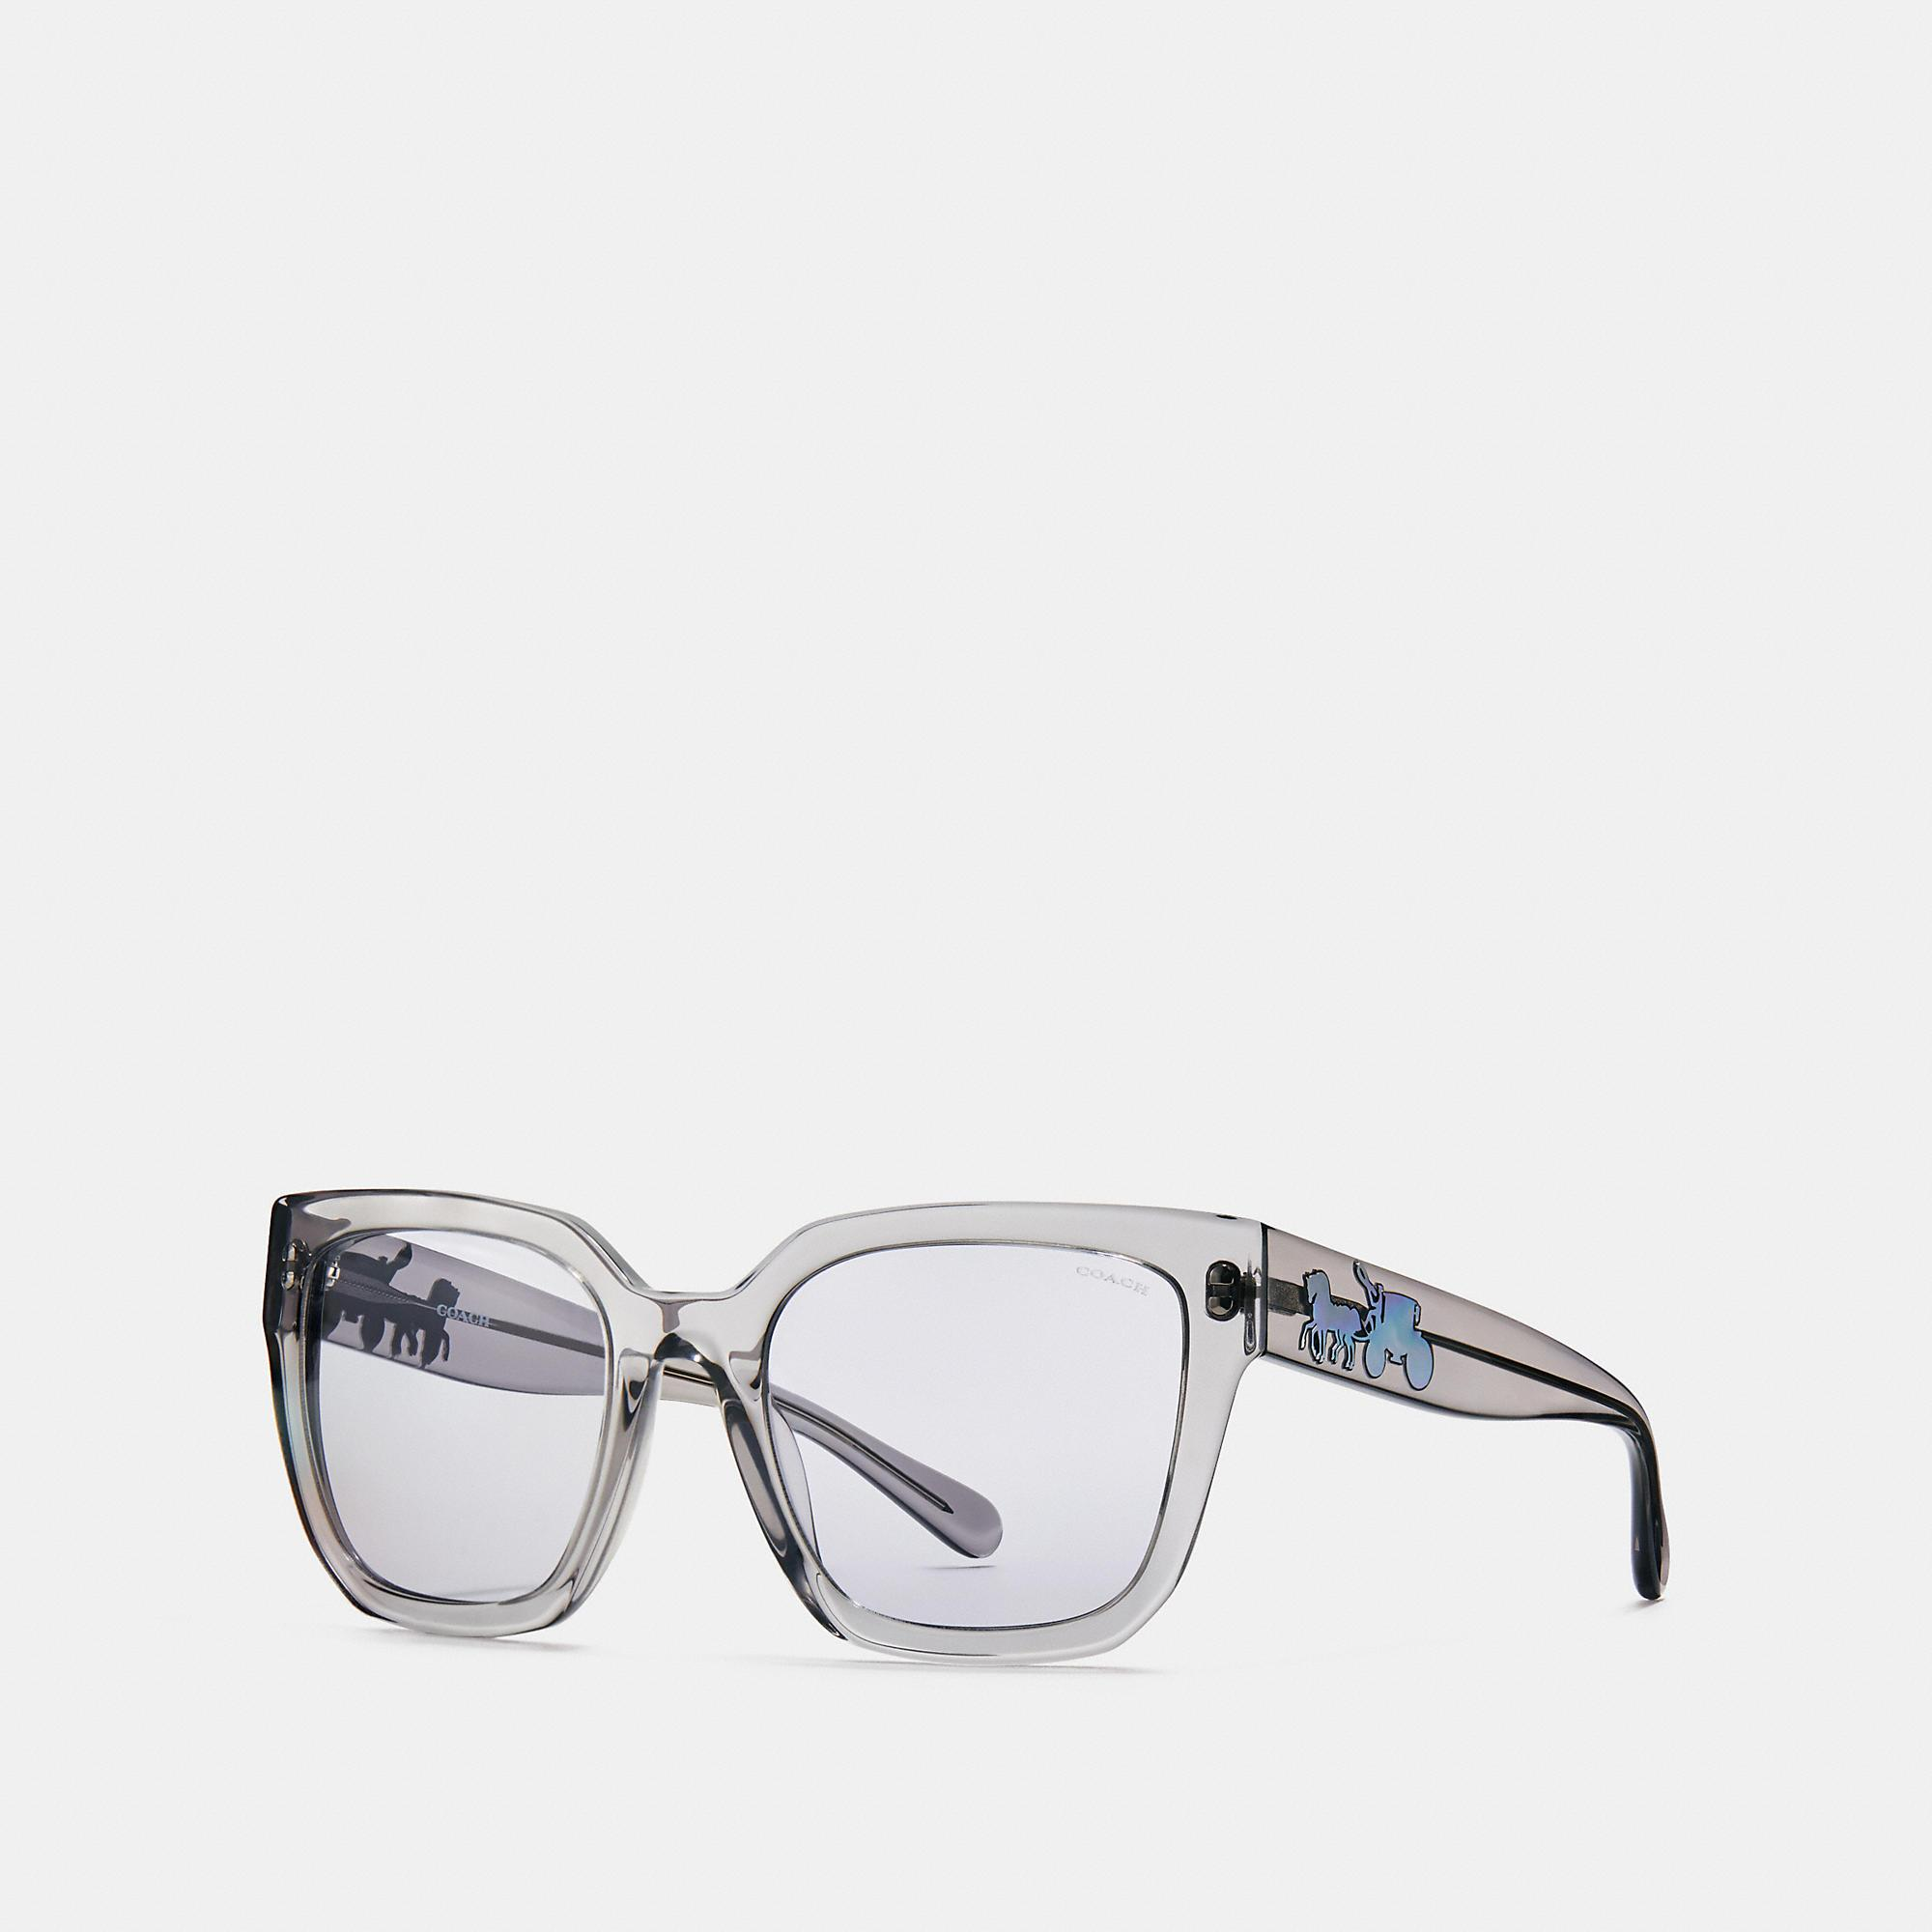 5a63d5f860f2 Coach Horse And Carriagre Hologram Square Sunglasses In Grey  Translucent/Violet Lens